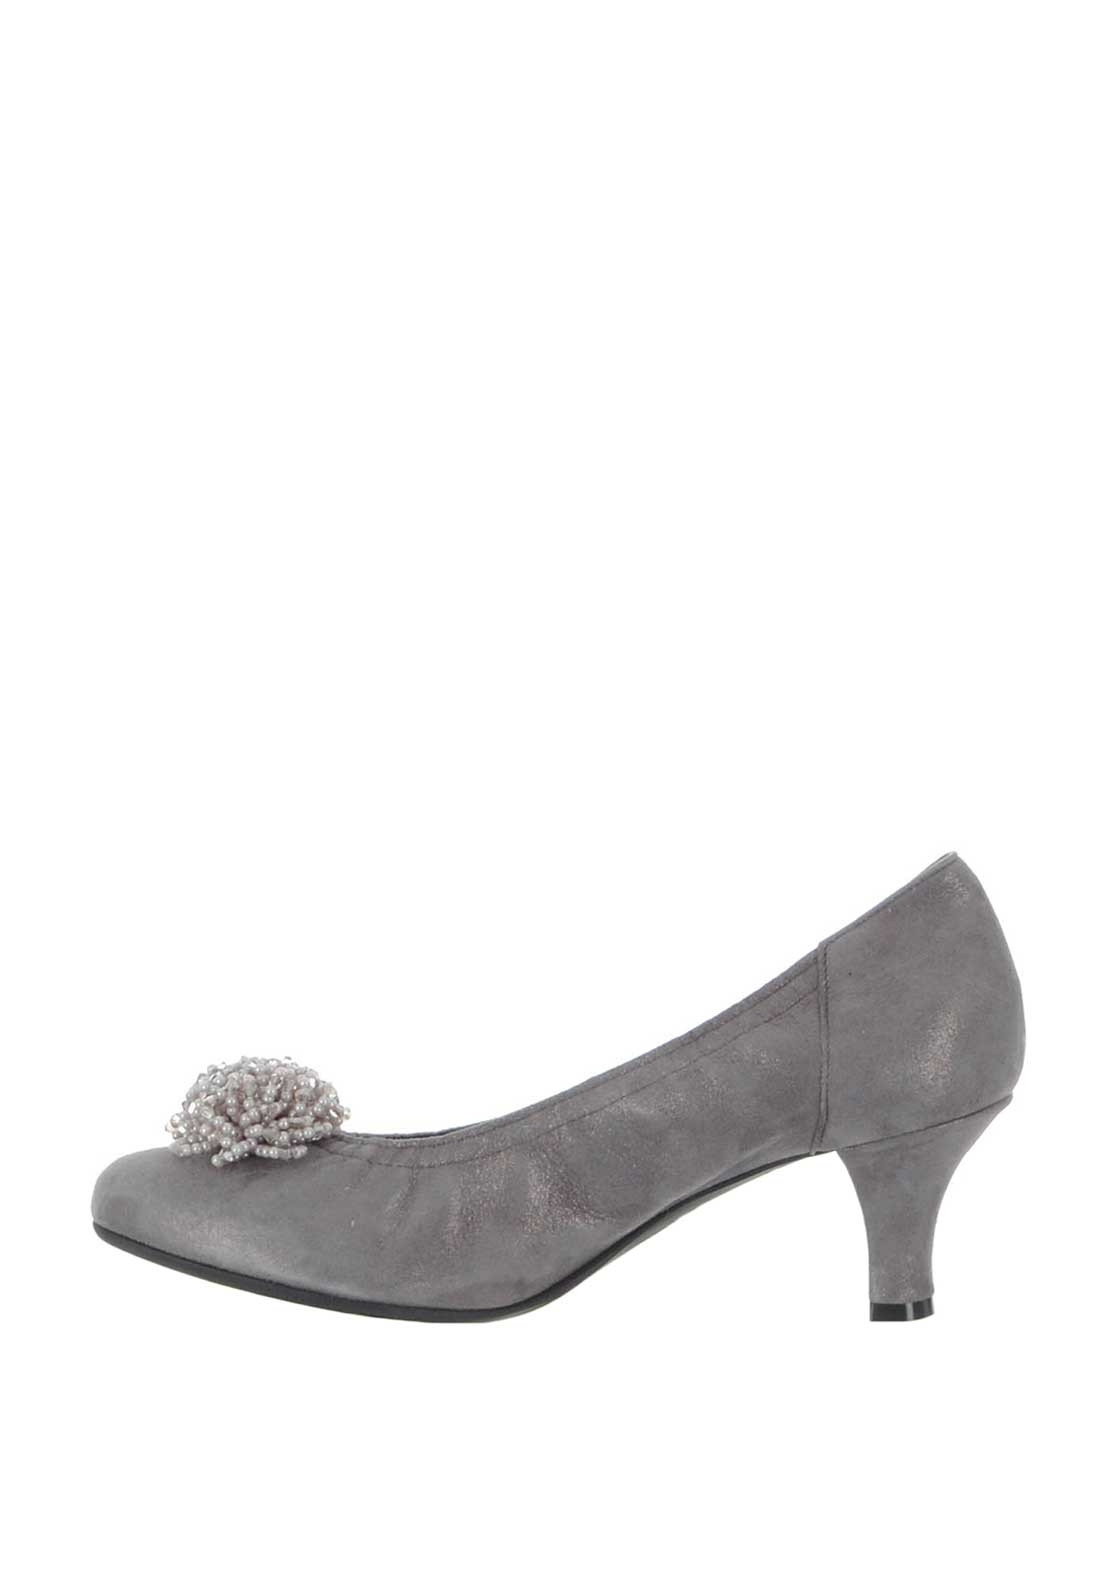 Beaded Low Suede ShoesGrey Le Babe Court 1lTJcK3F